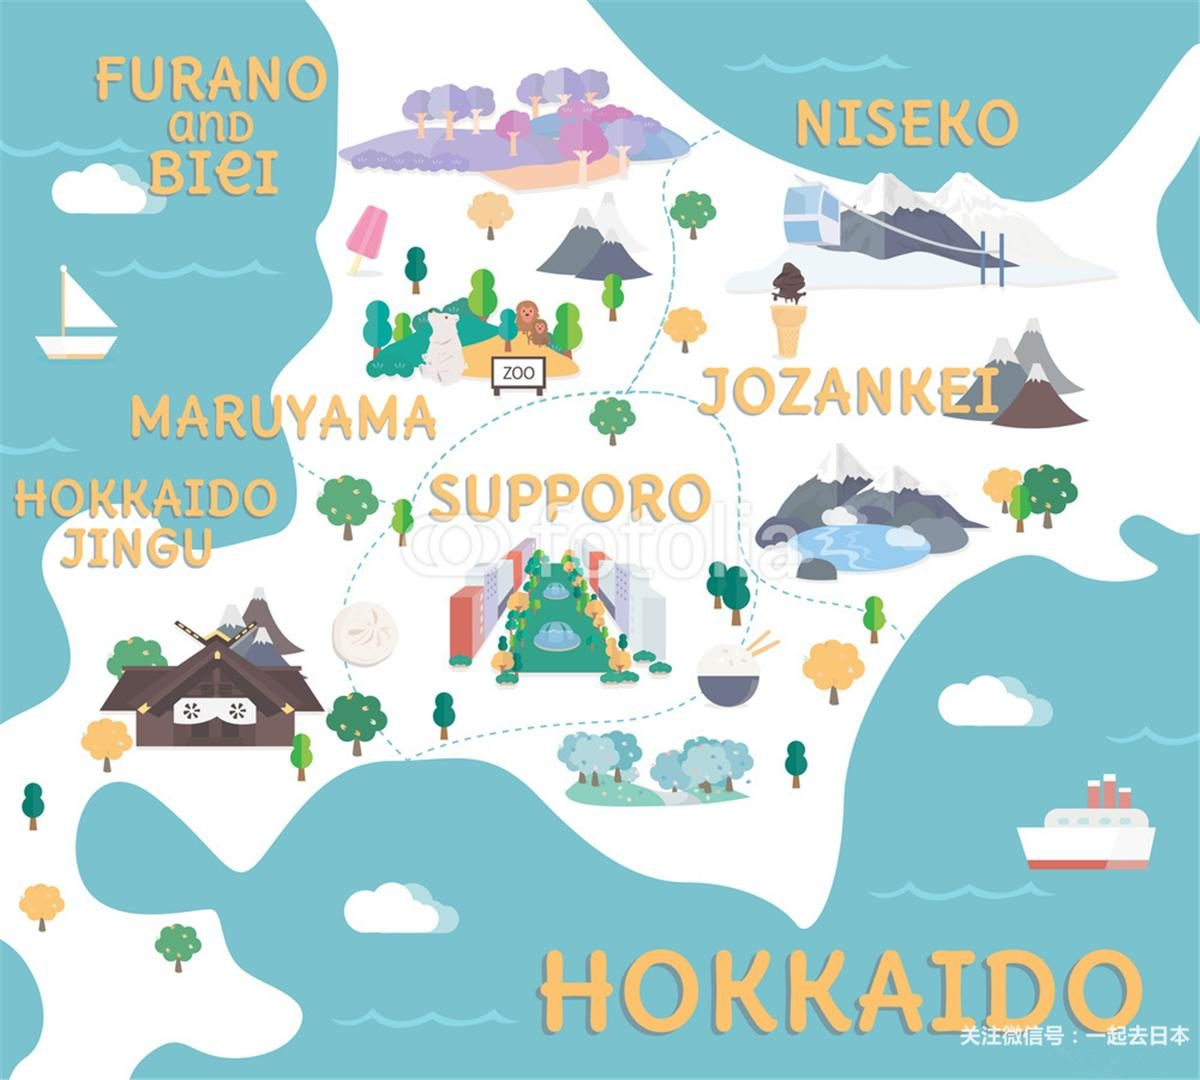 Hokkaido: The best of Japan's Japan